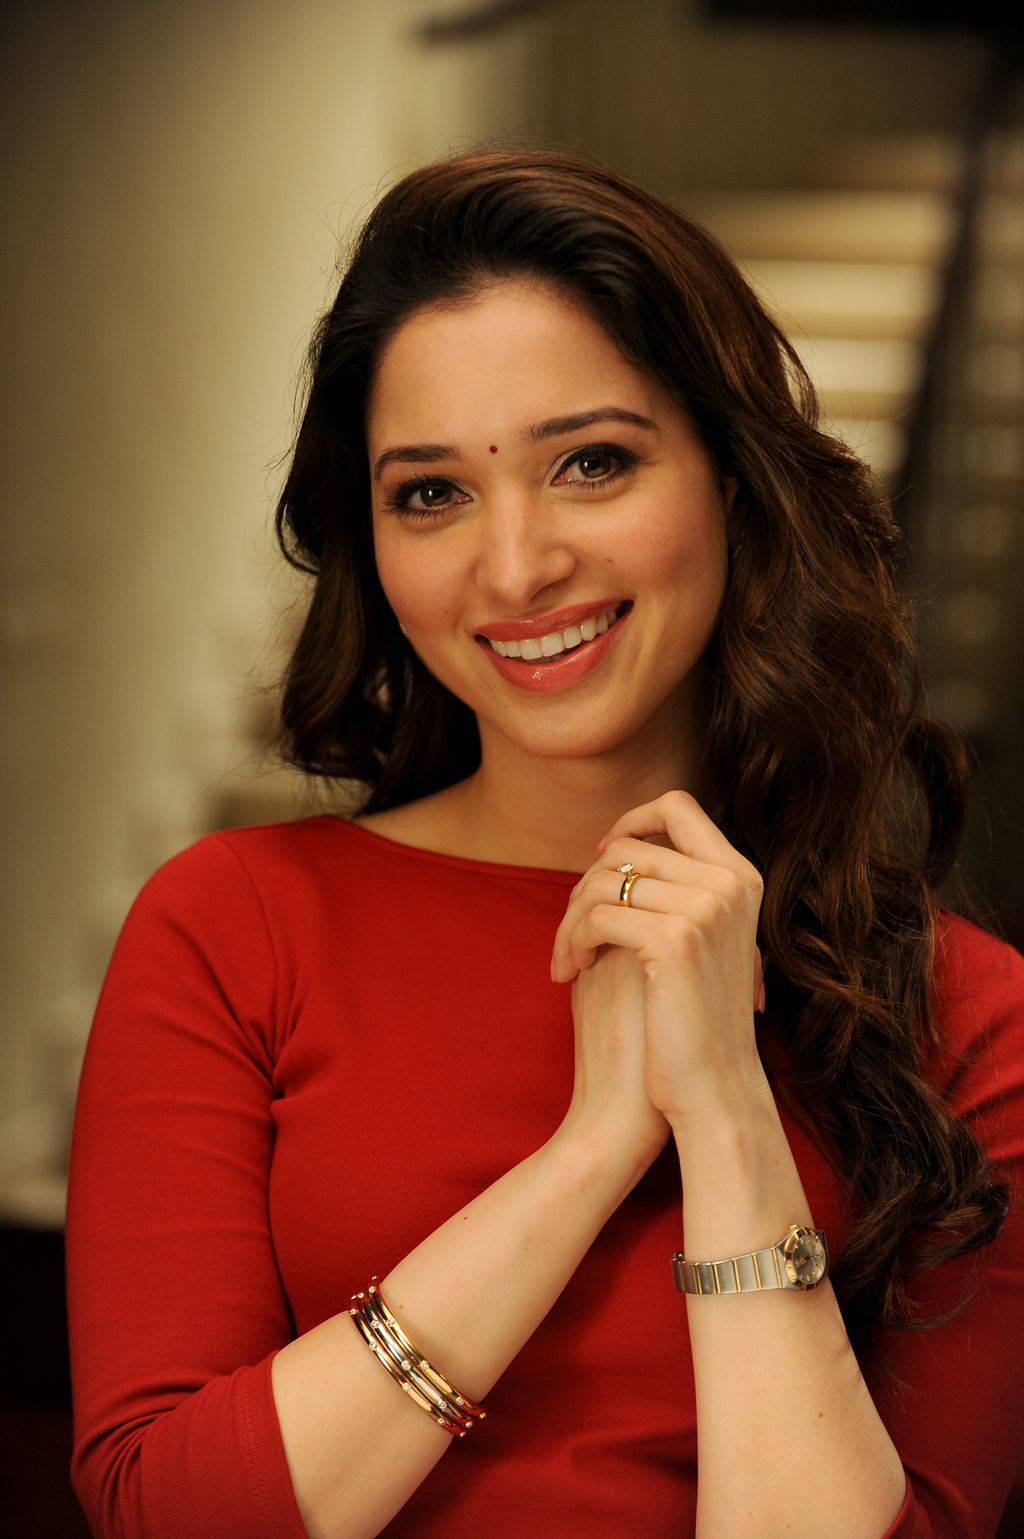 Tamanna Wallpapers Gallery Wallpaper Cave